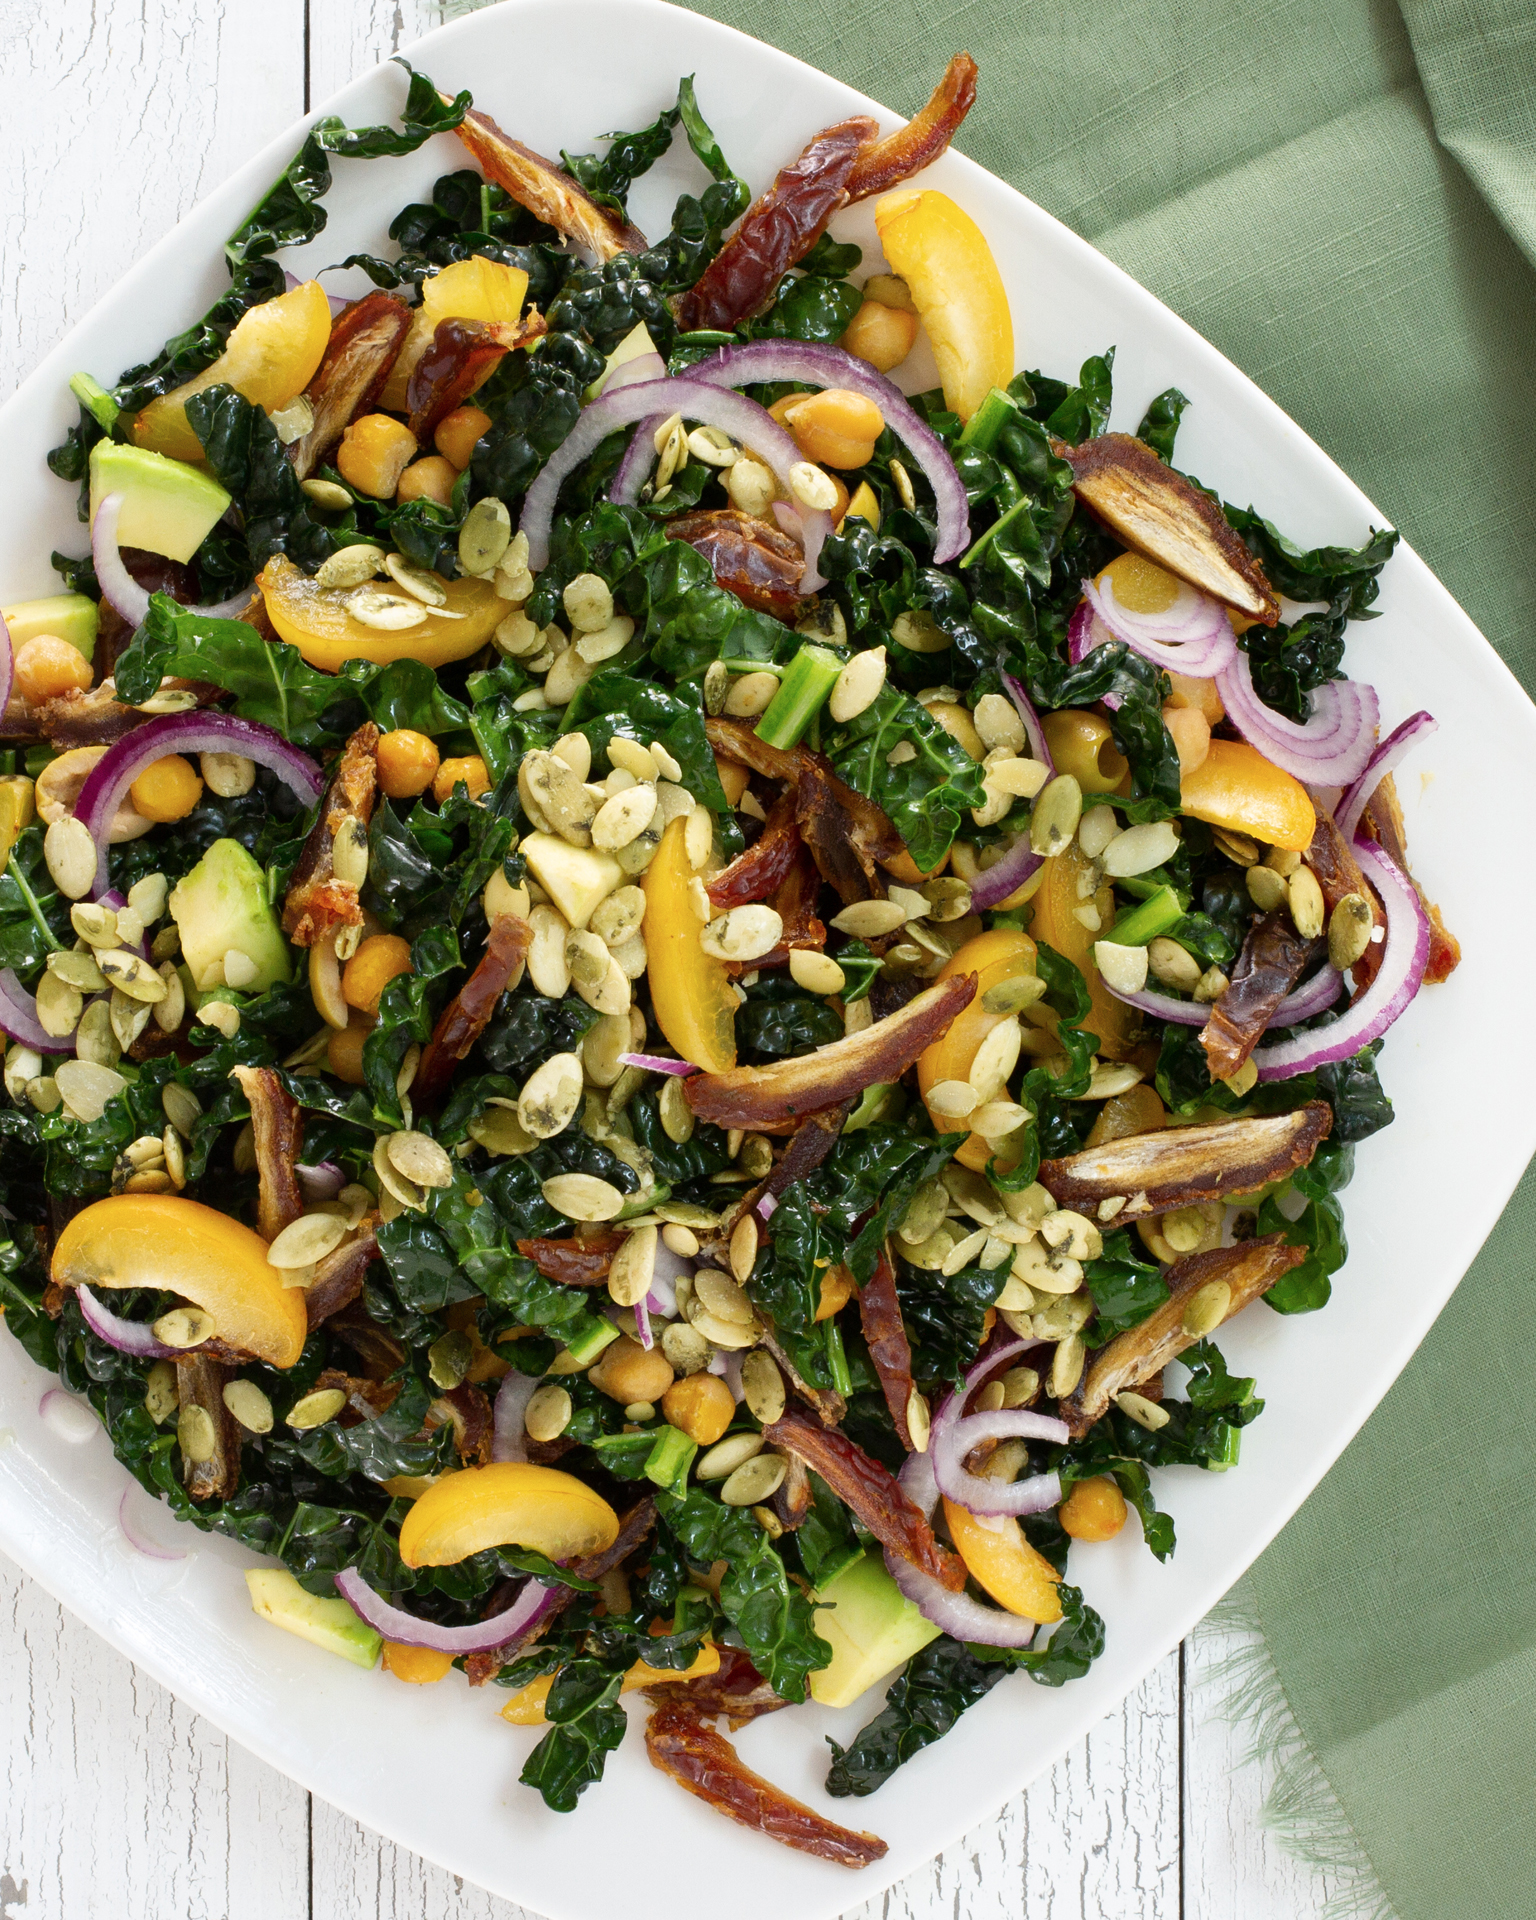 Kale Salad with Medjool Dates and Avocado